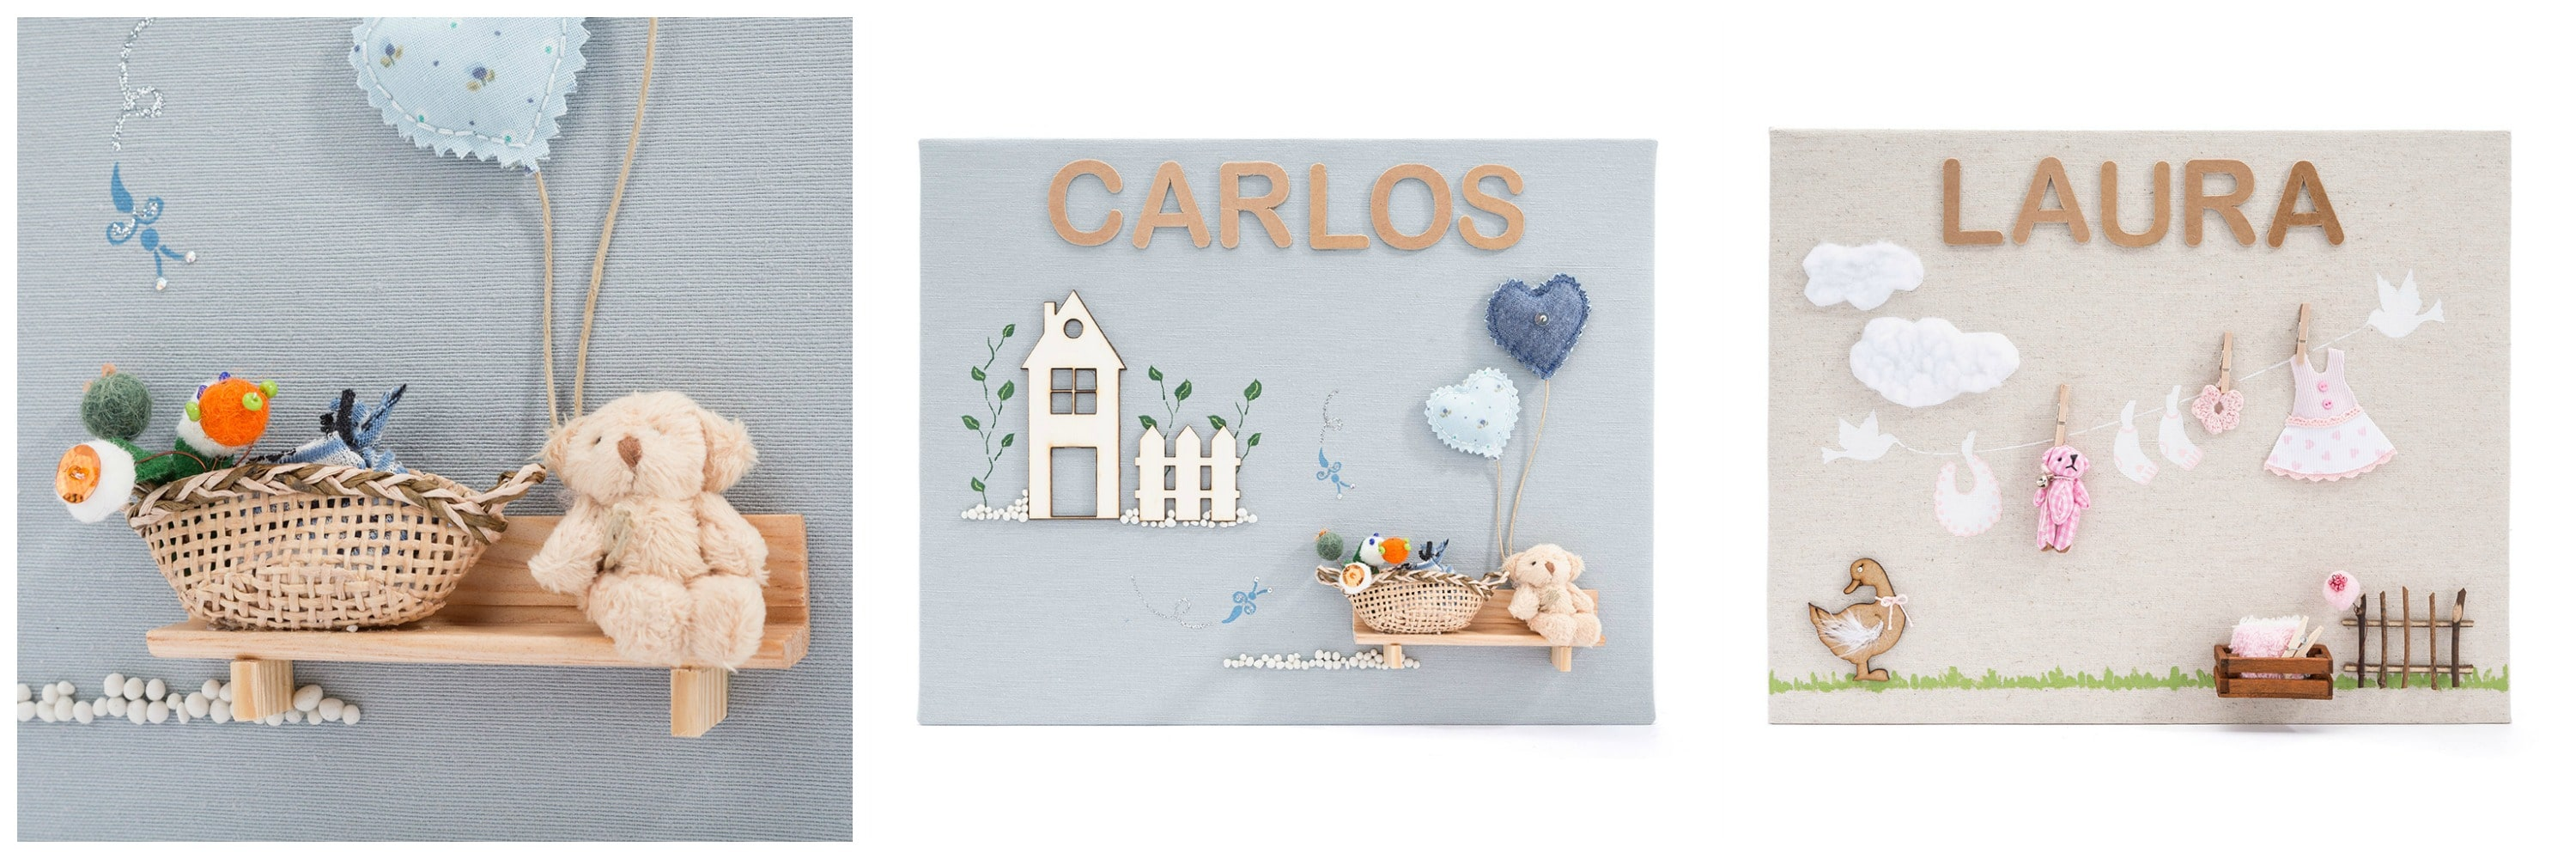 Regalos personalizados beb de par s for Cuadros originales para decorar